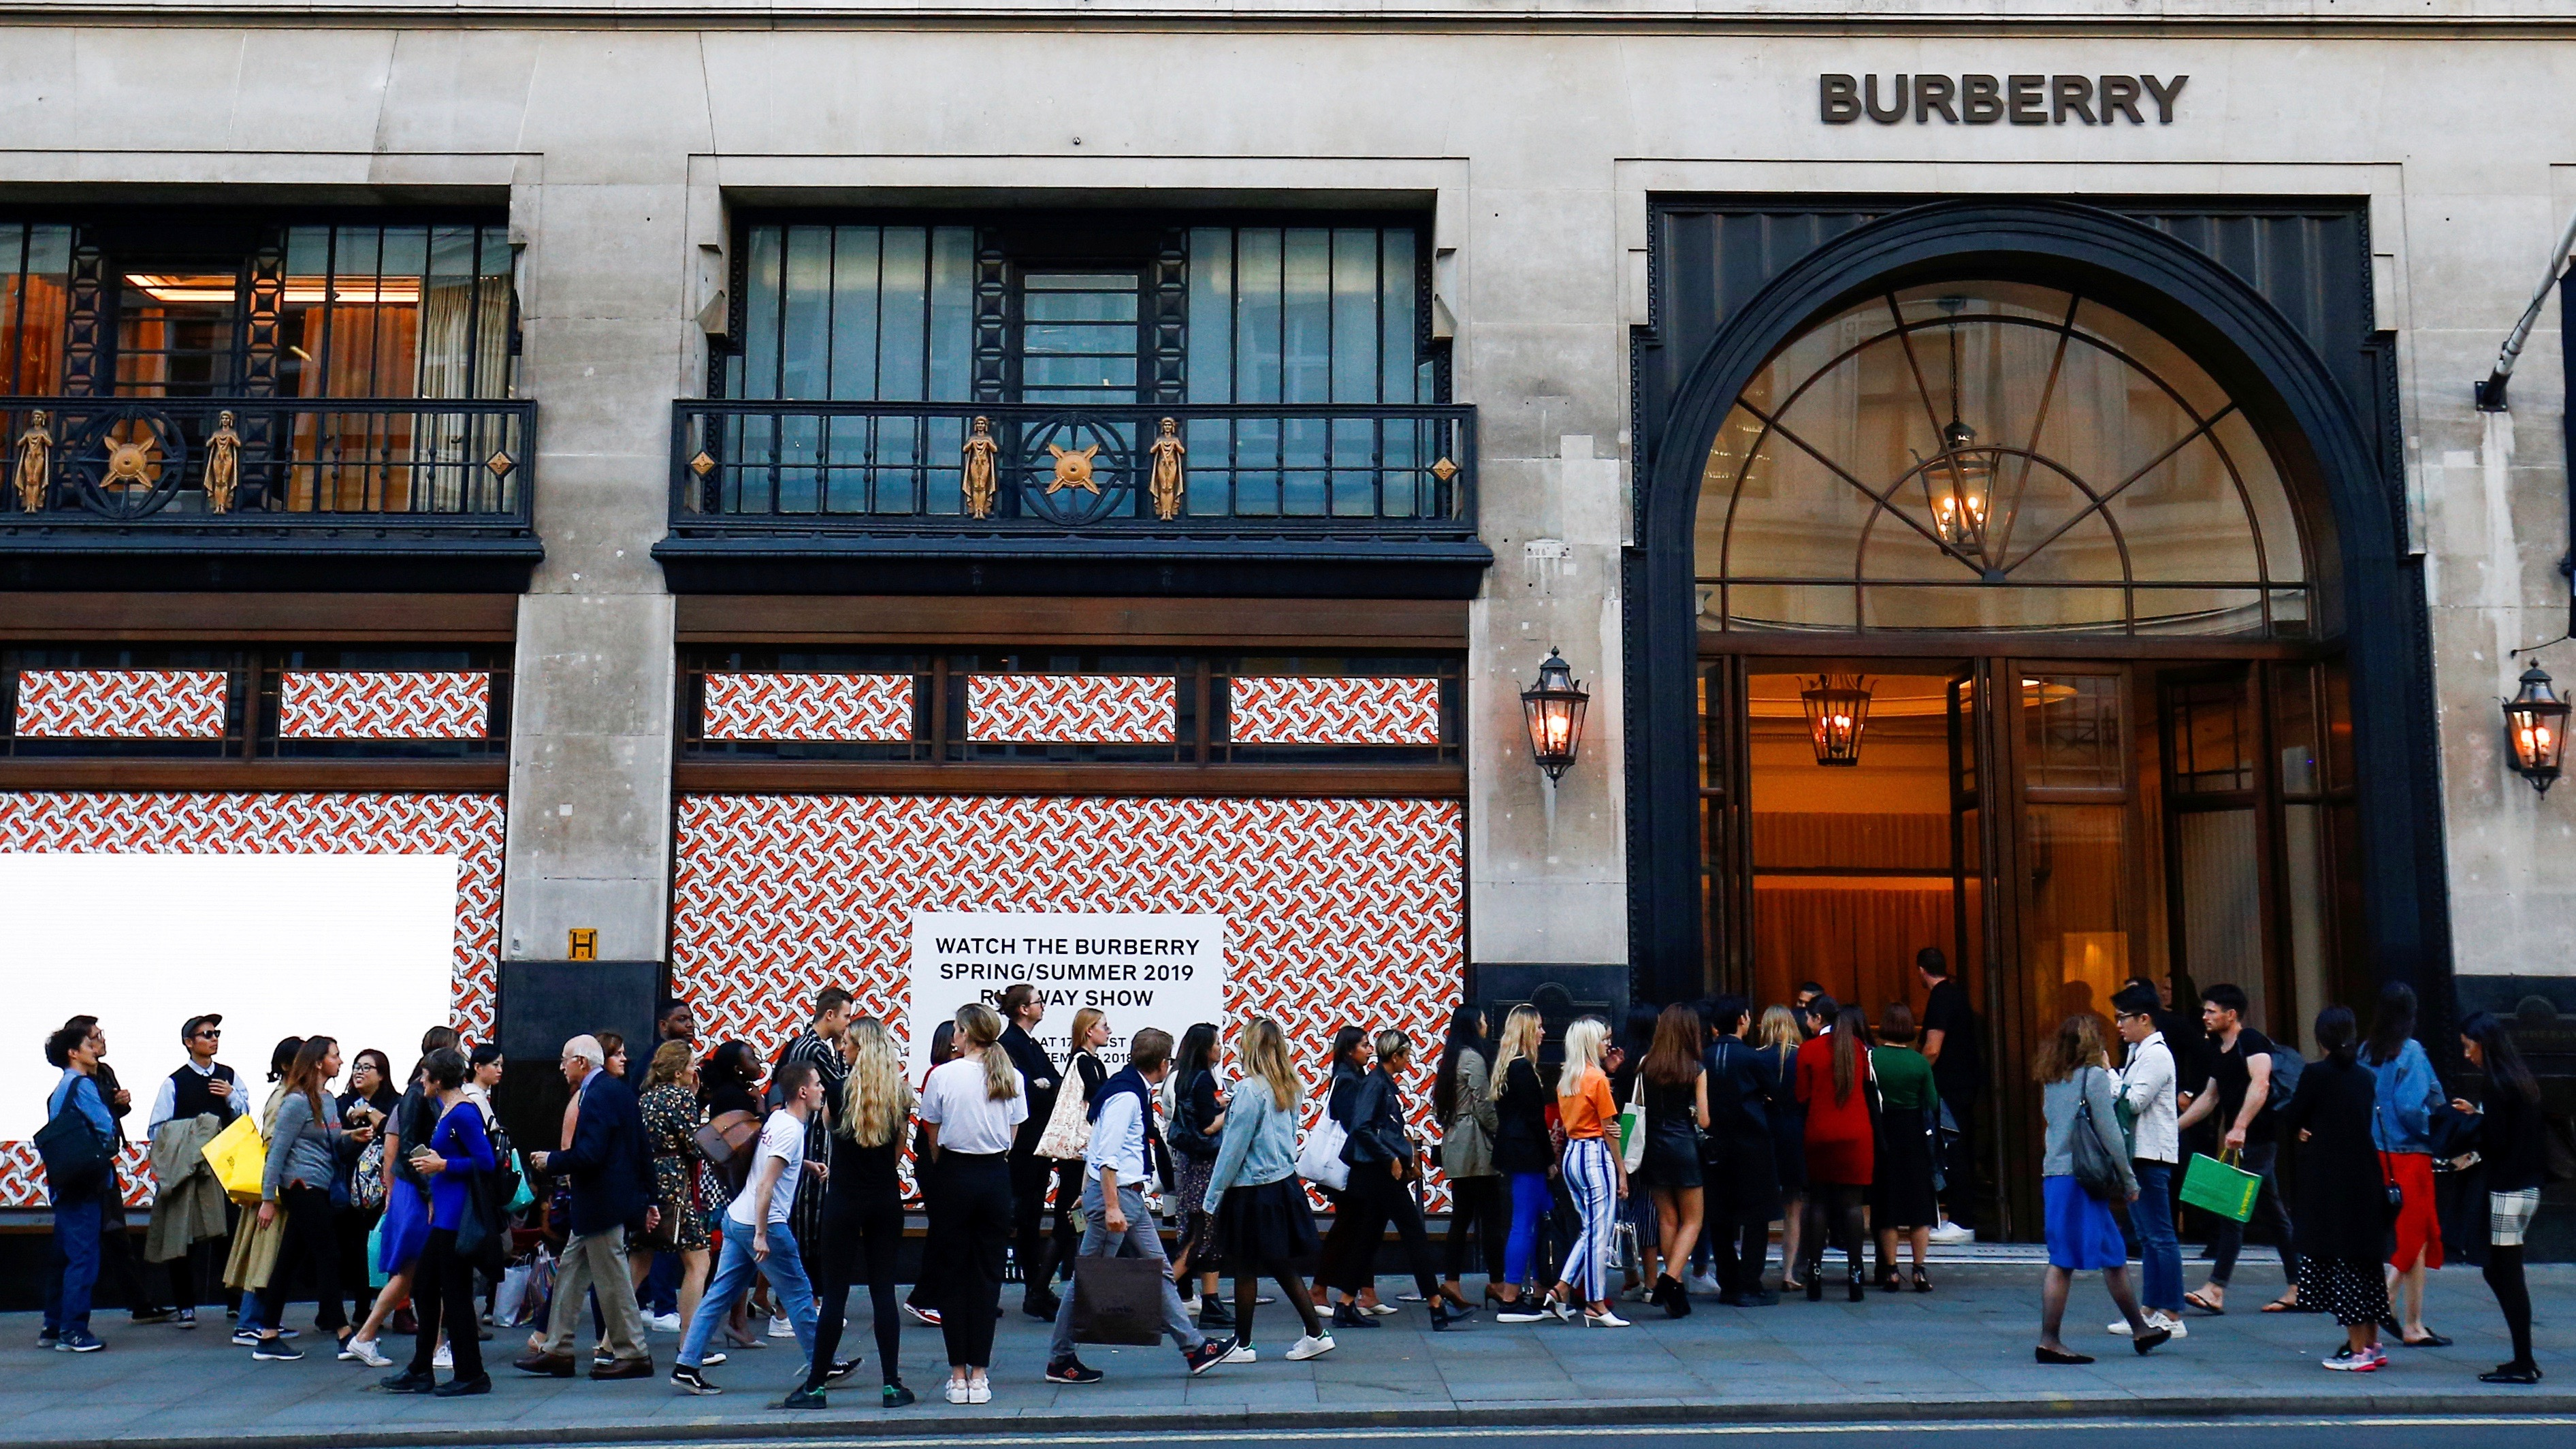 Burberry's new campaign aims to be inclusive—sort of